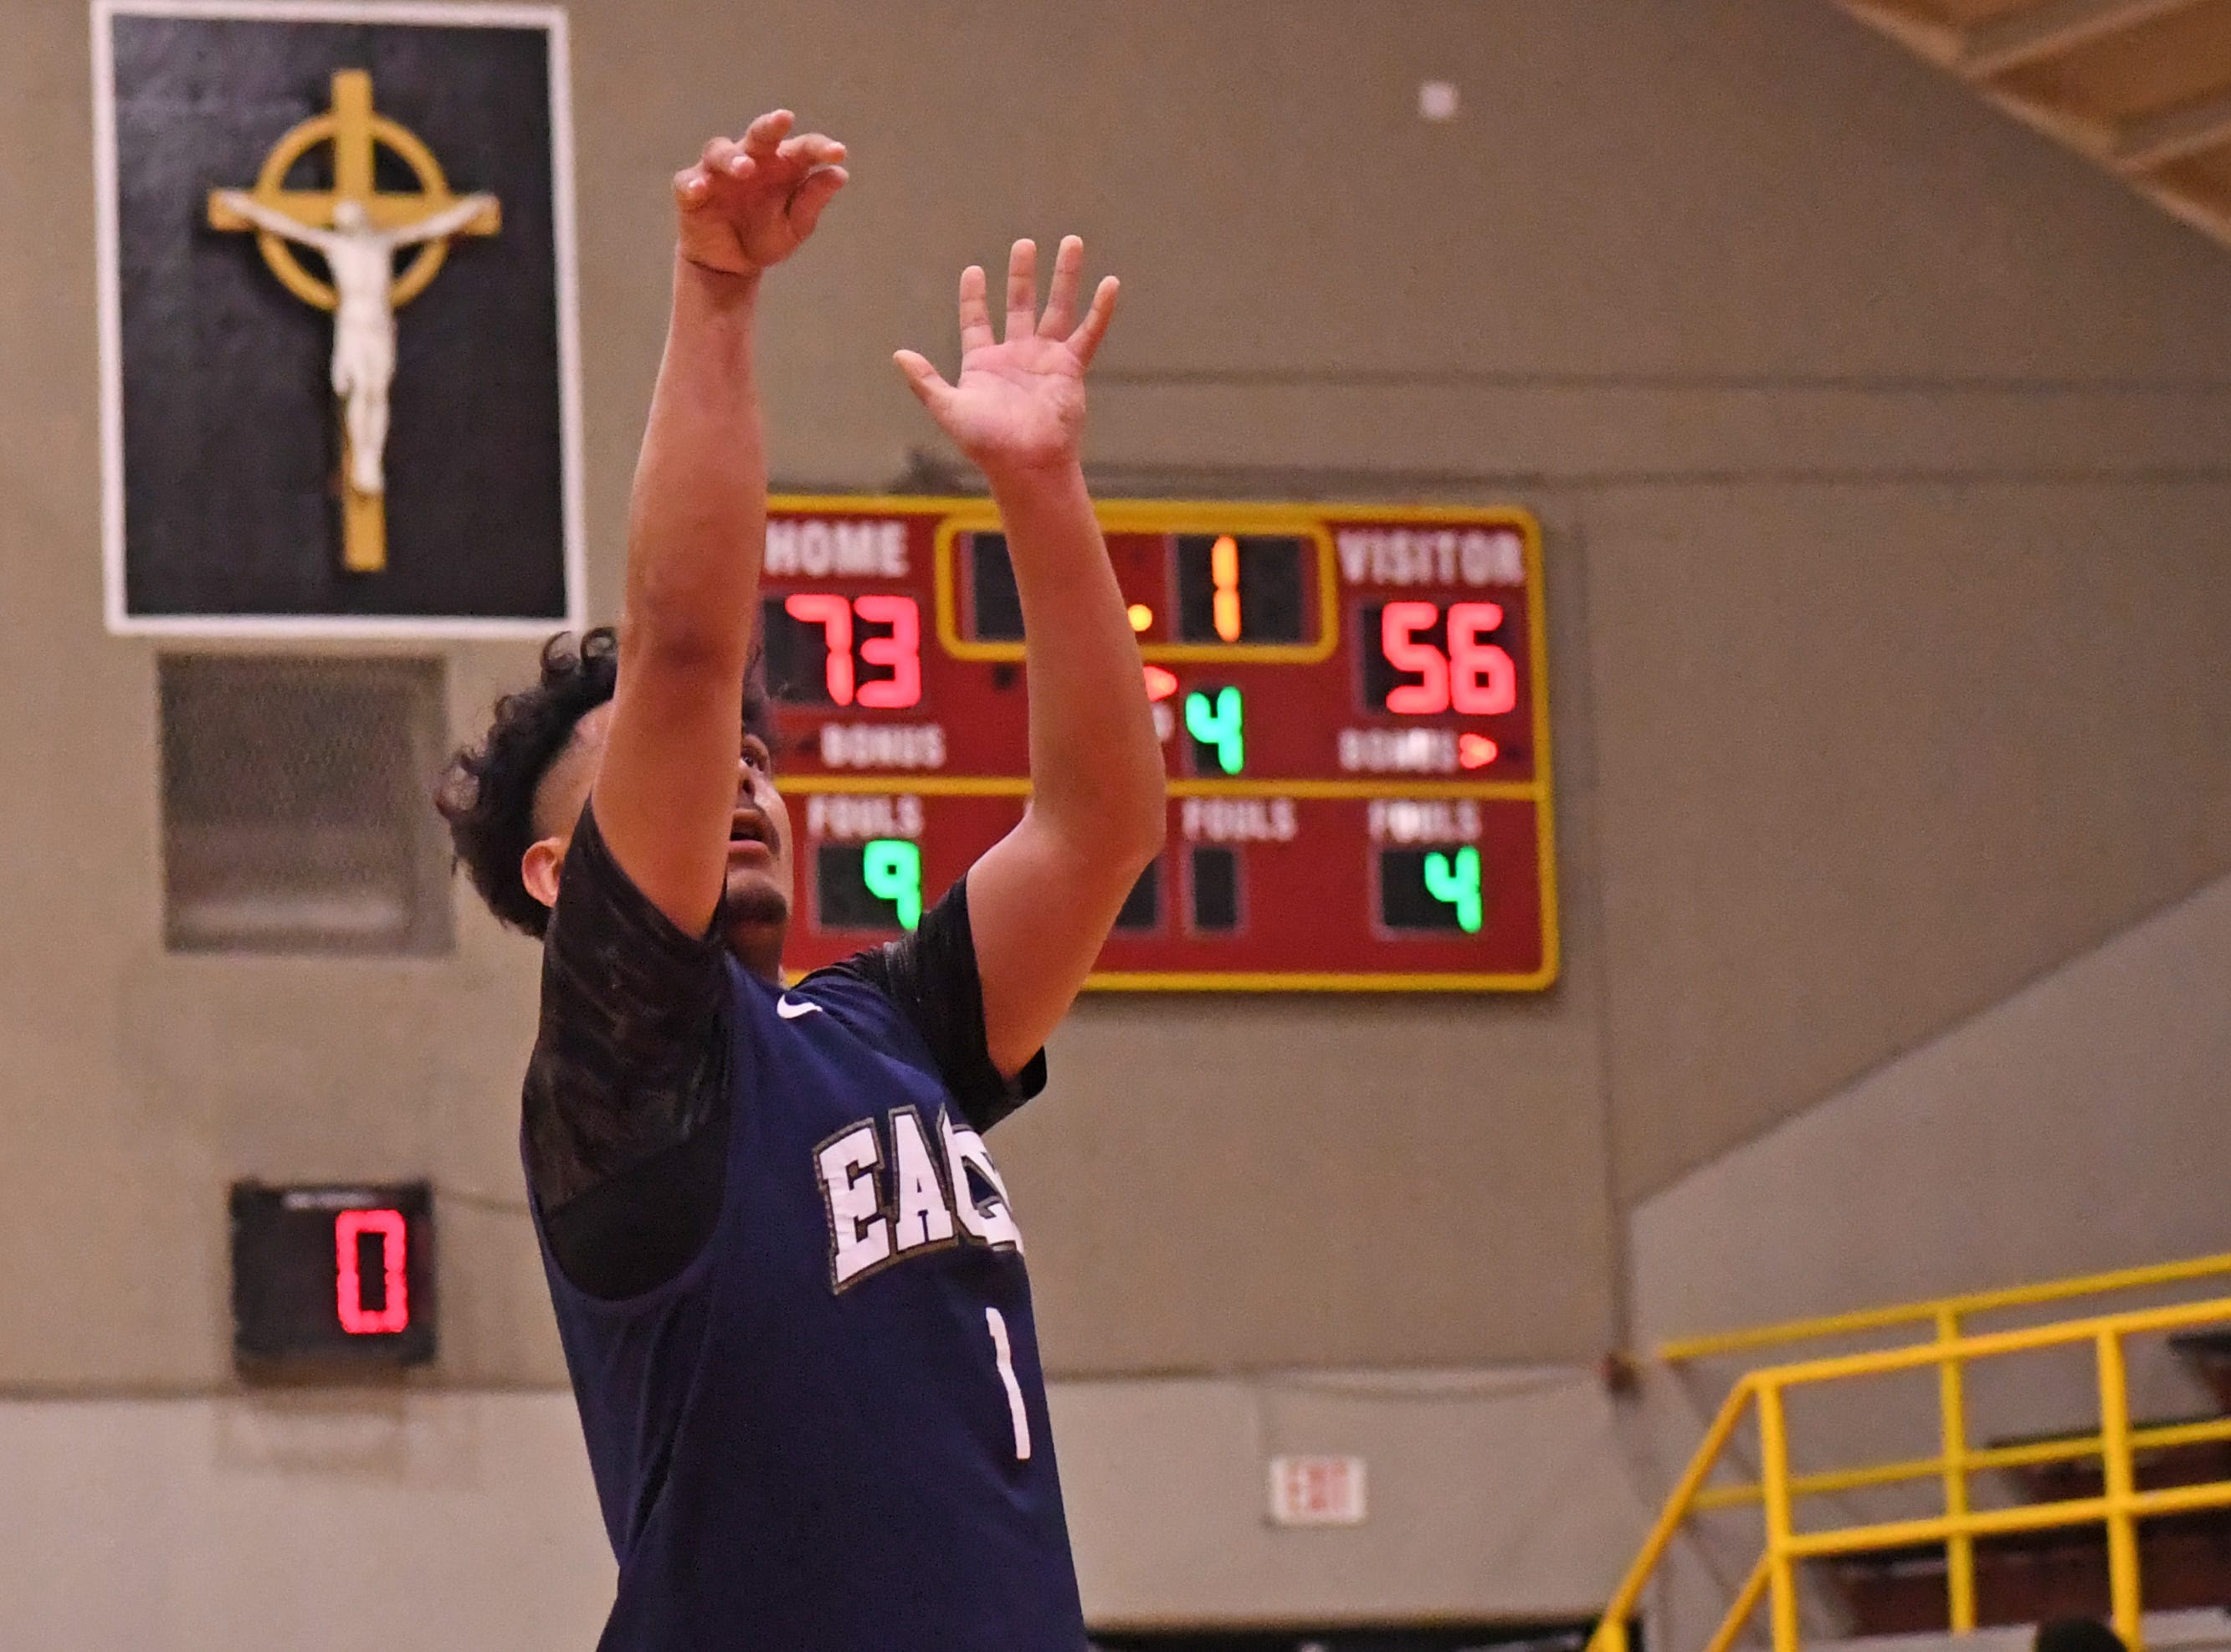 Everett Alvarez guard Isaiah Rodriguez (1) scores a free throw in the waning seconds of the game against Pittsburg.